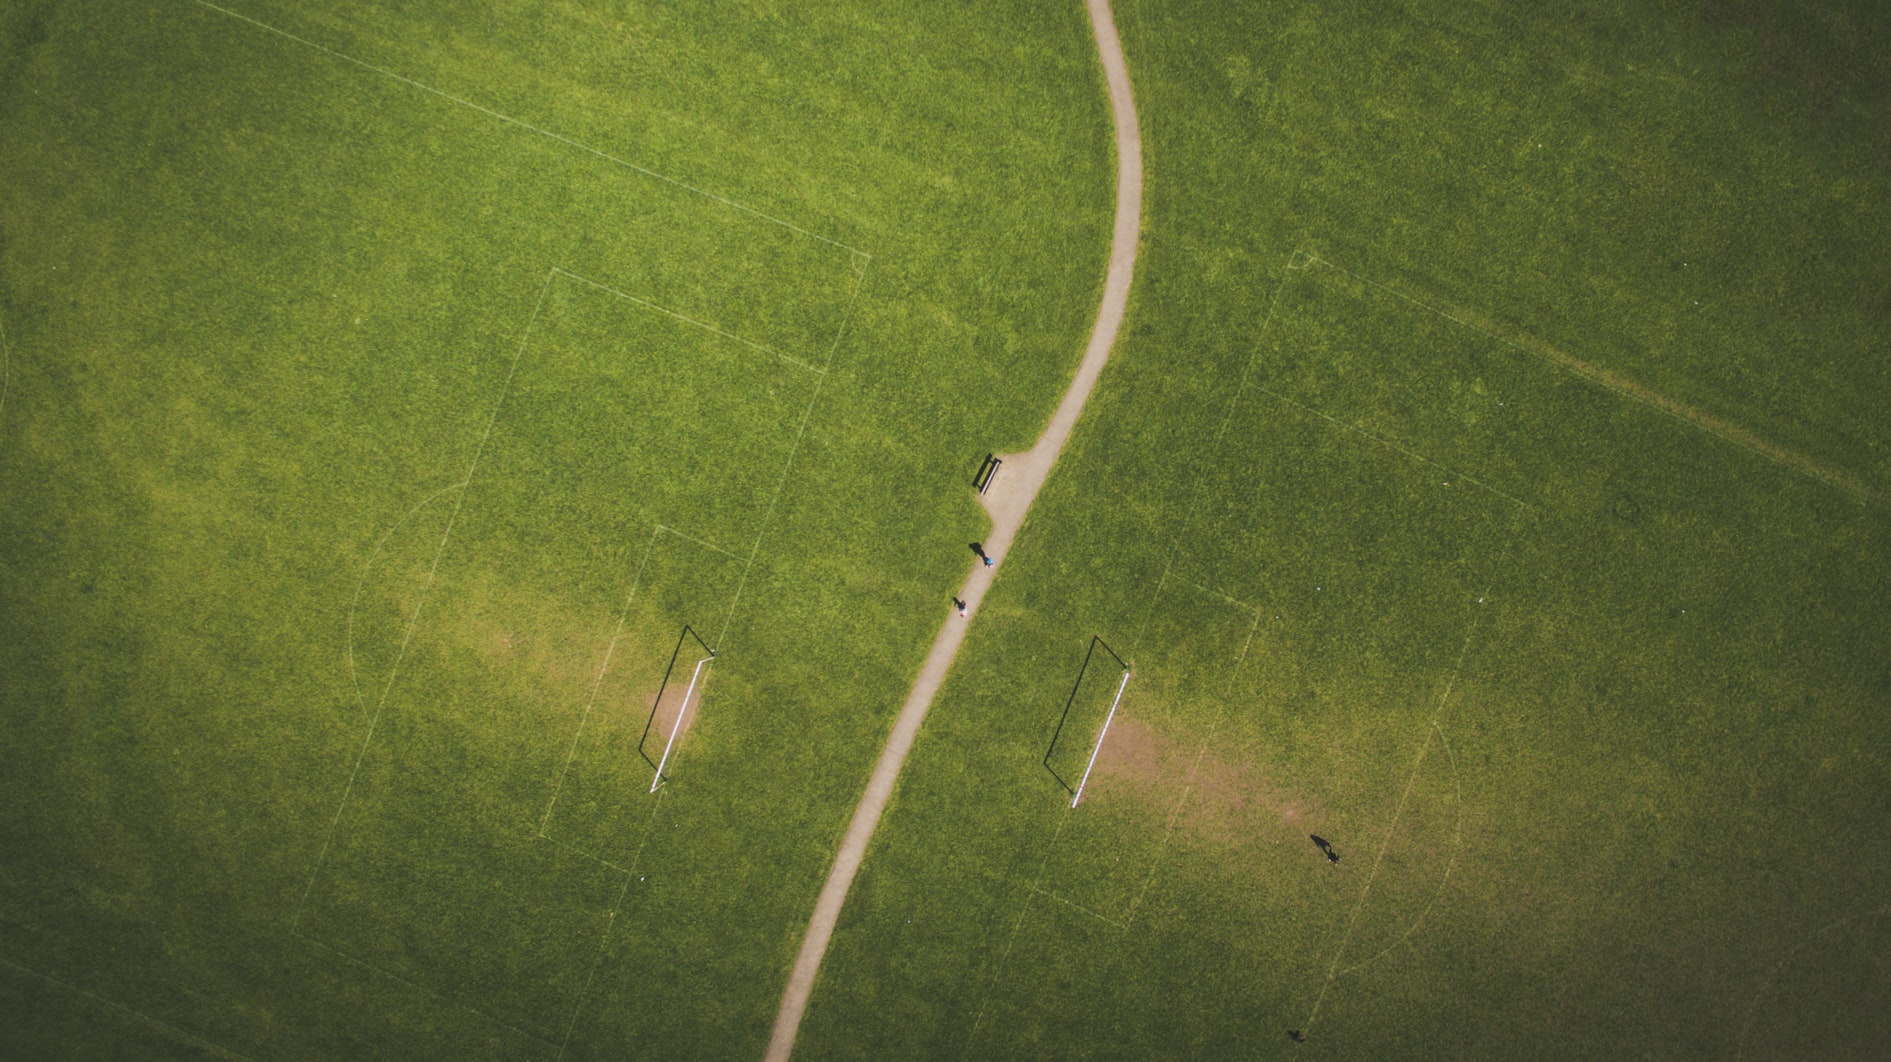 A drone shot of a narrow path with green football fields with goalposts on both sides